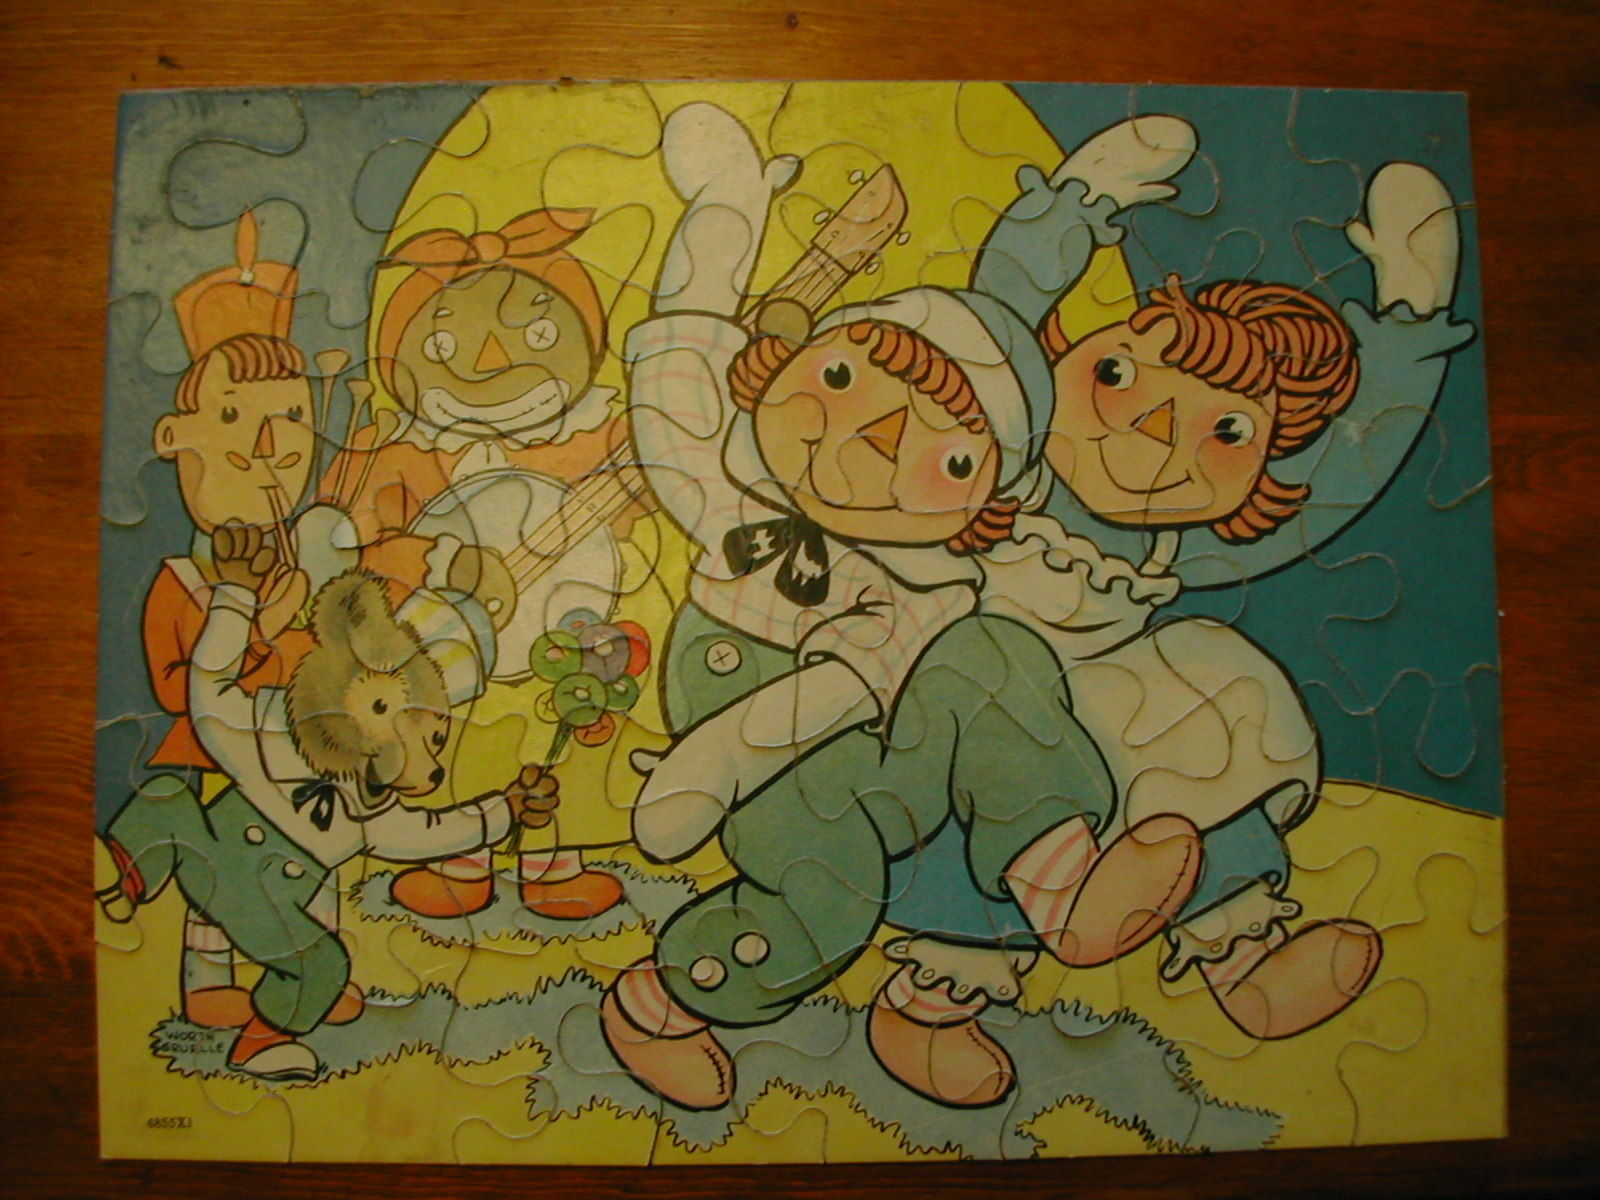 Raggedy Ann and and and Andy 4 Piece Puzzles, copyright 1940 773089